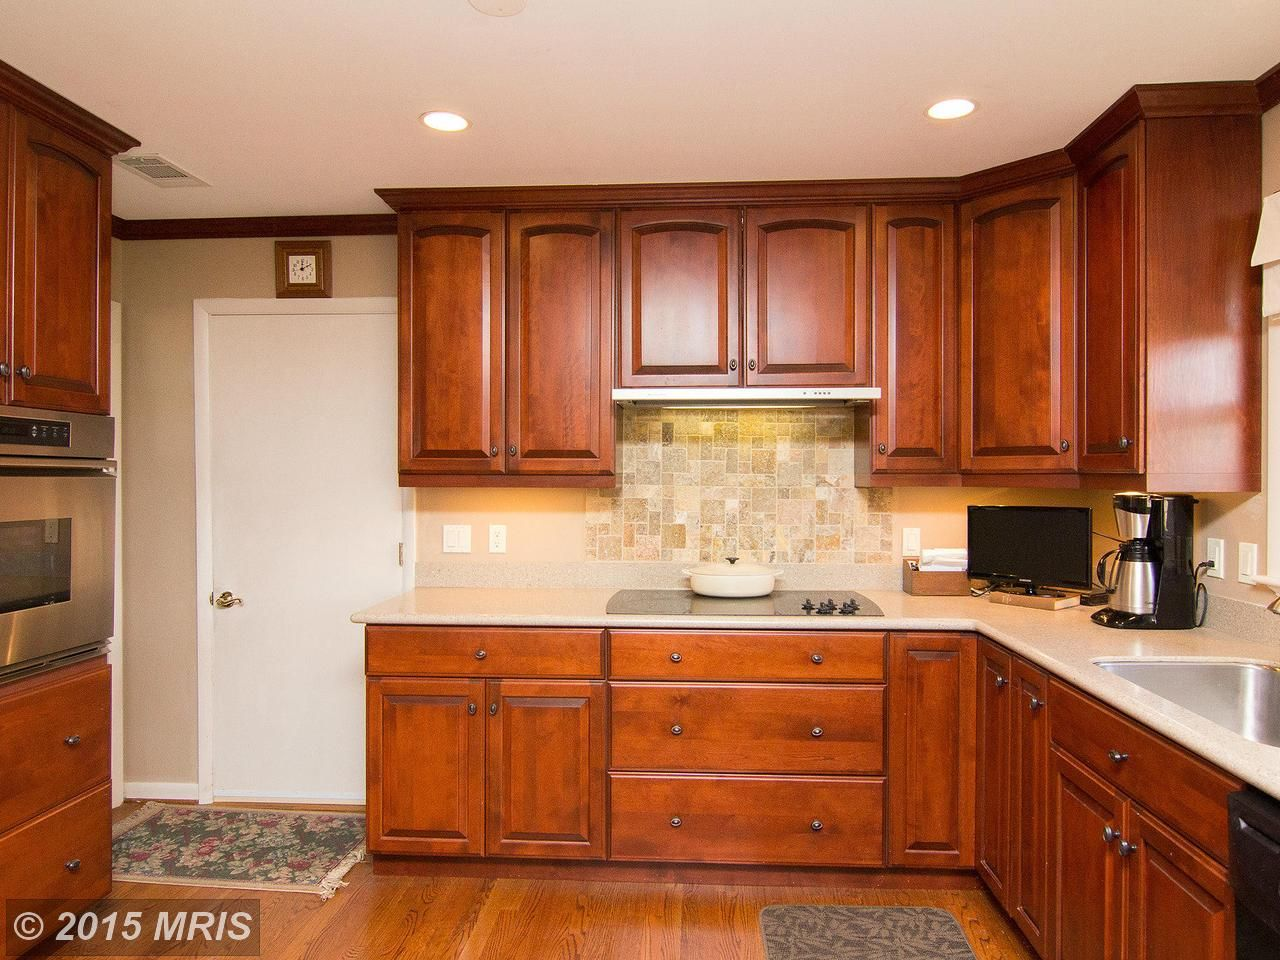 Sold Or Expired 61207874 Kitchen Cabinets Home Decor Home